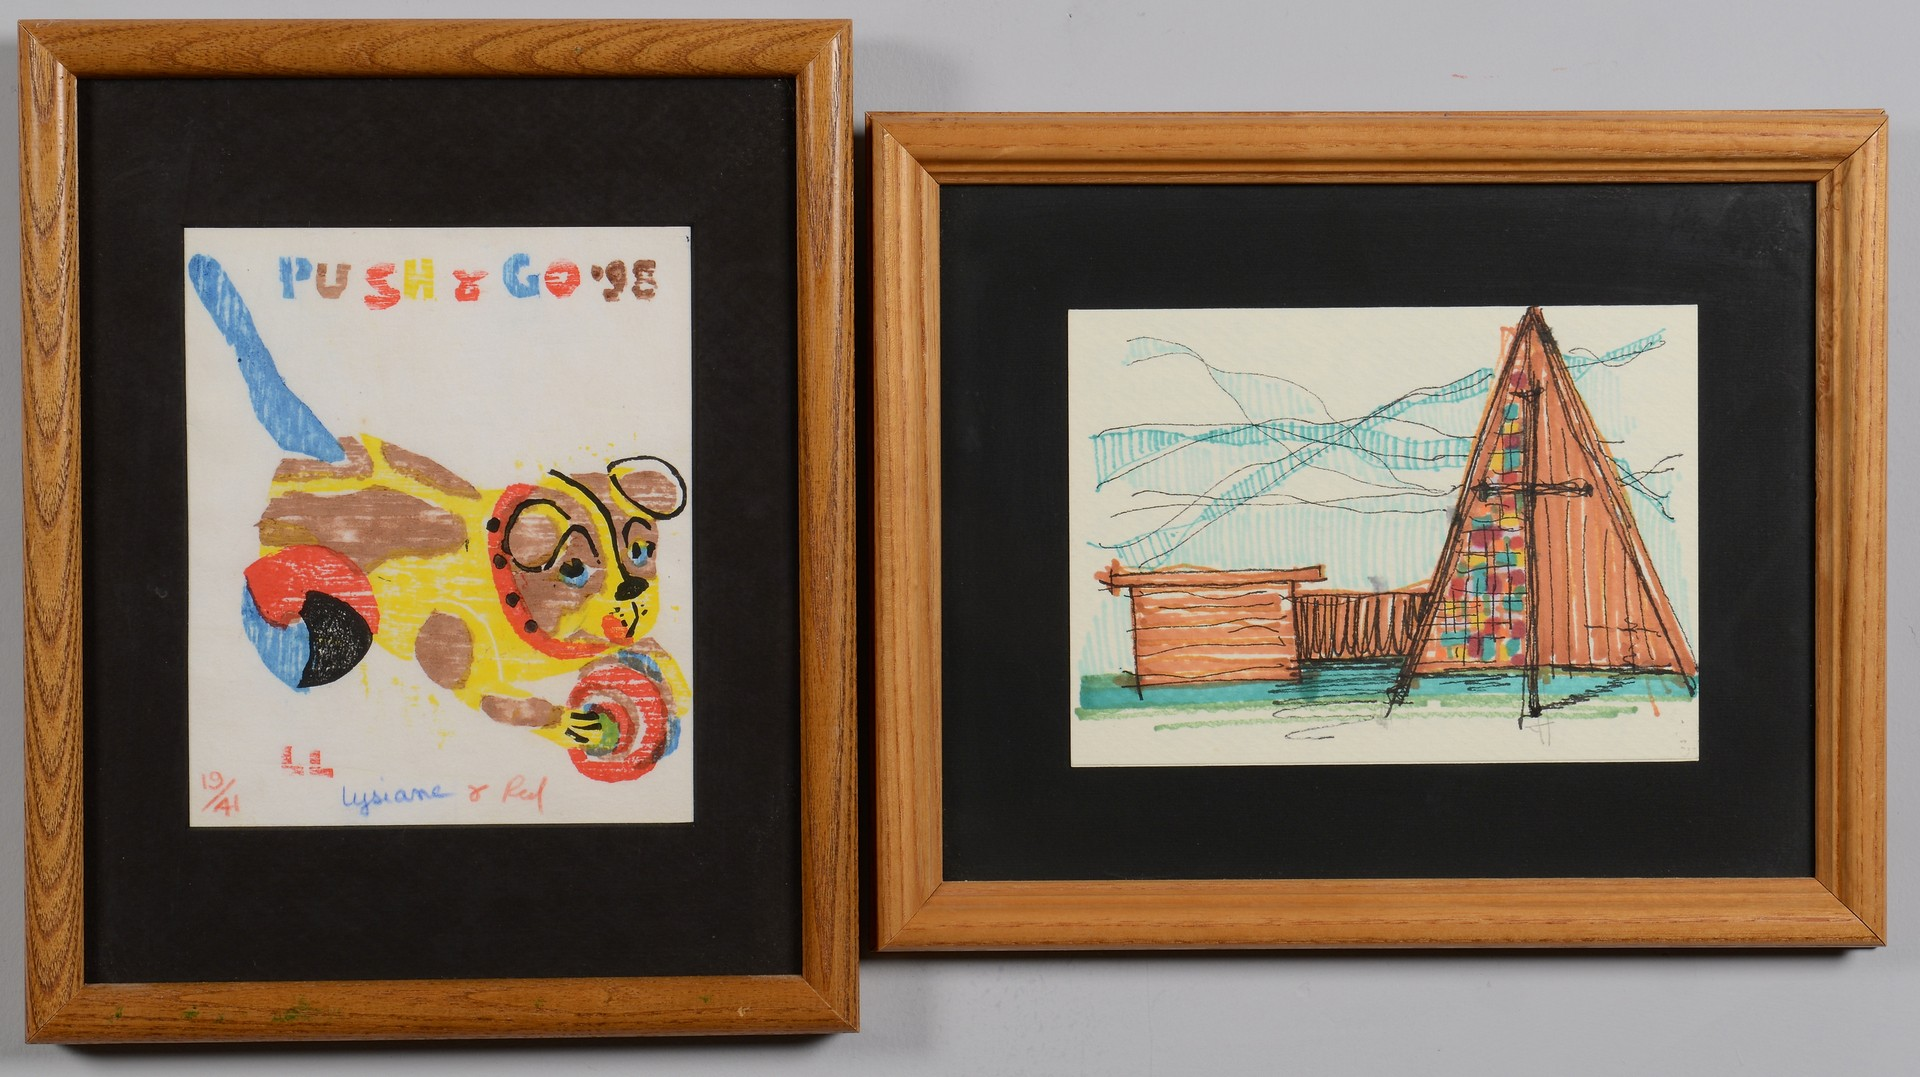 Lot 137: Red Grooms Study for Carousel & Redsville, plus 2 other artworks